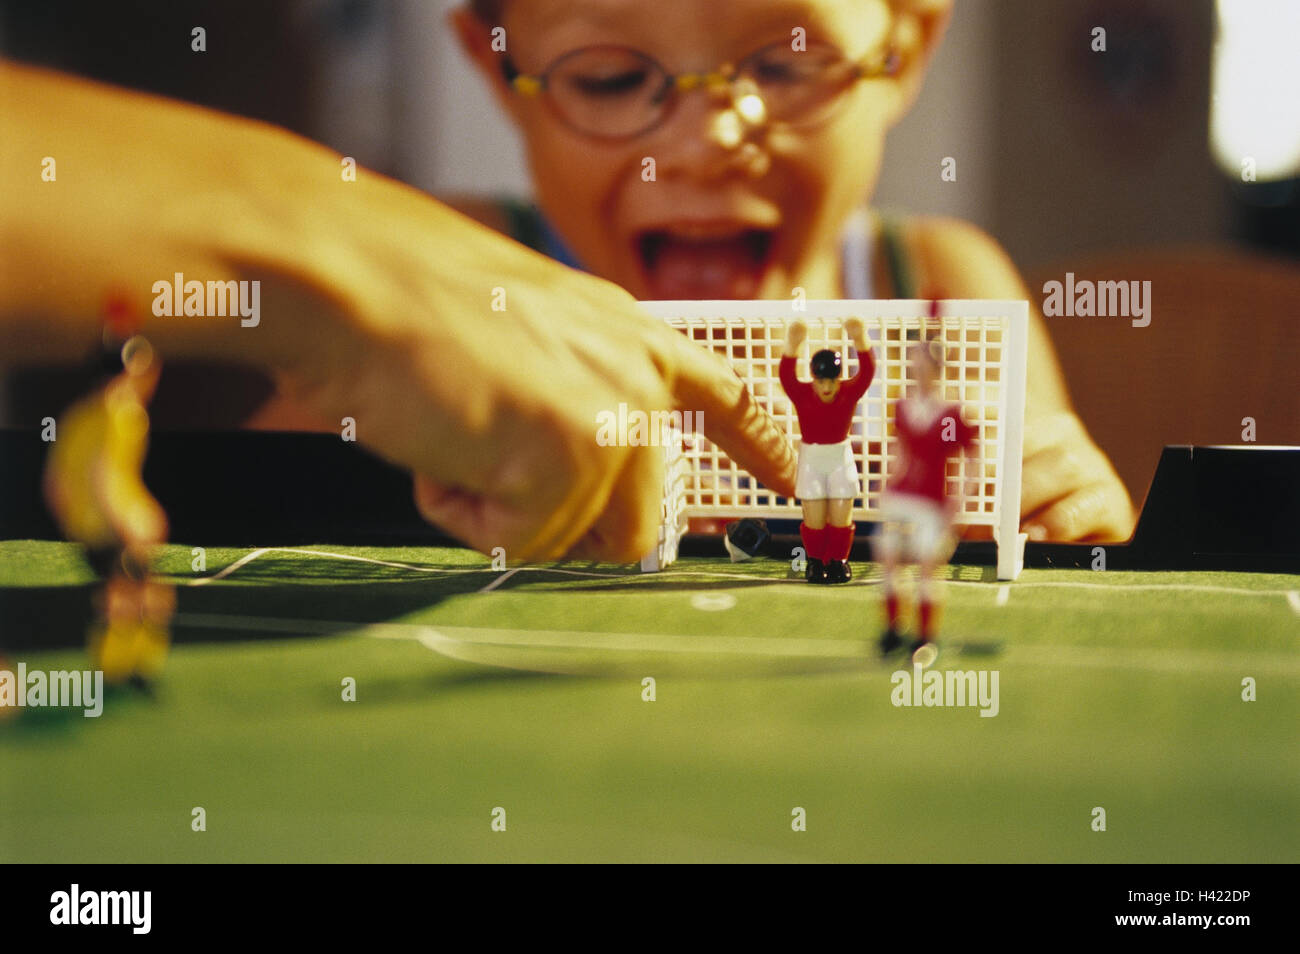 Children Table Football Play Detail Inside Boy Table Football